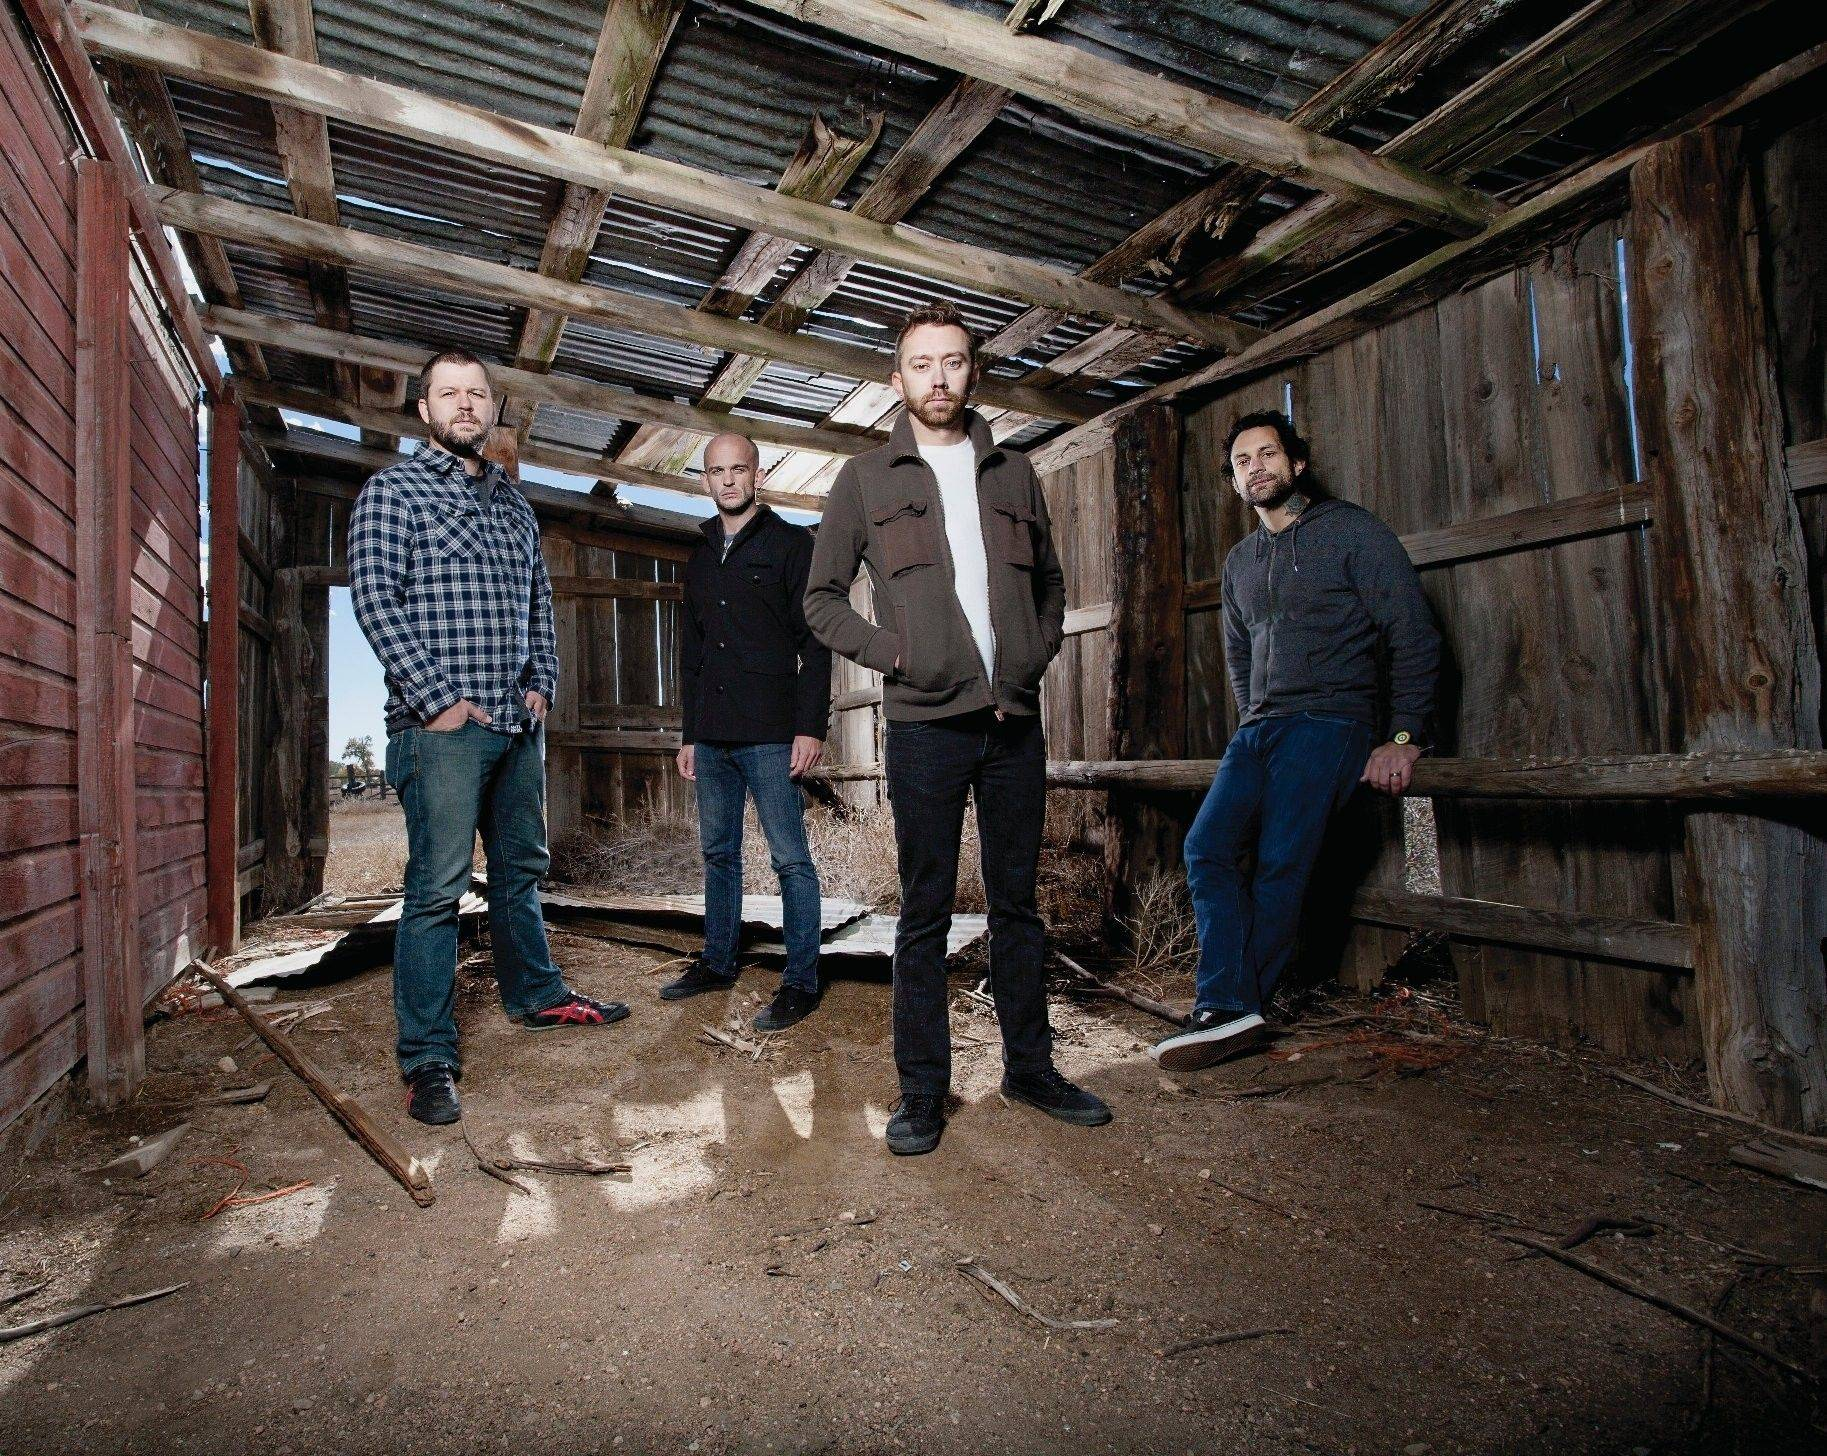 The popular punk band Rise Against is, from left to right, drummer Brandon Barnes of Norridge, guitarist Zach Blair of Austin, Texas, lead vocalist Tim McIlrath of Arlington Heights, and bass guitarist Joe Principe of Downers Grove.